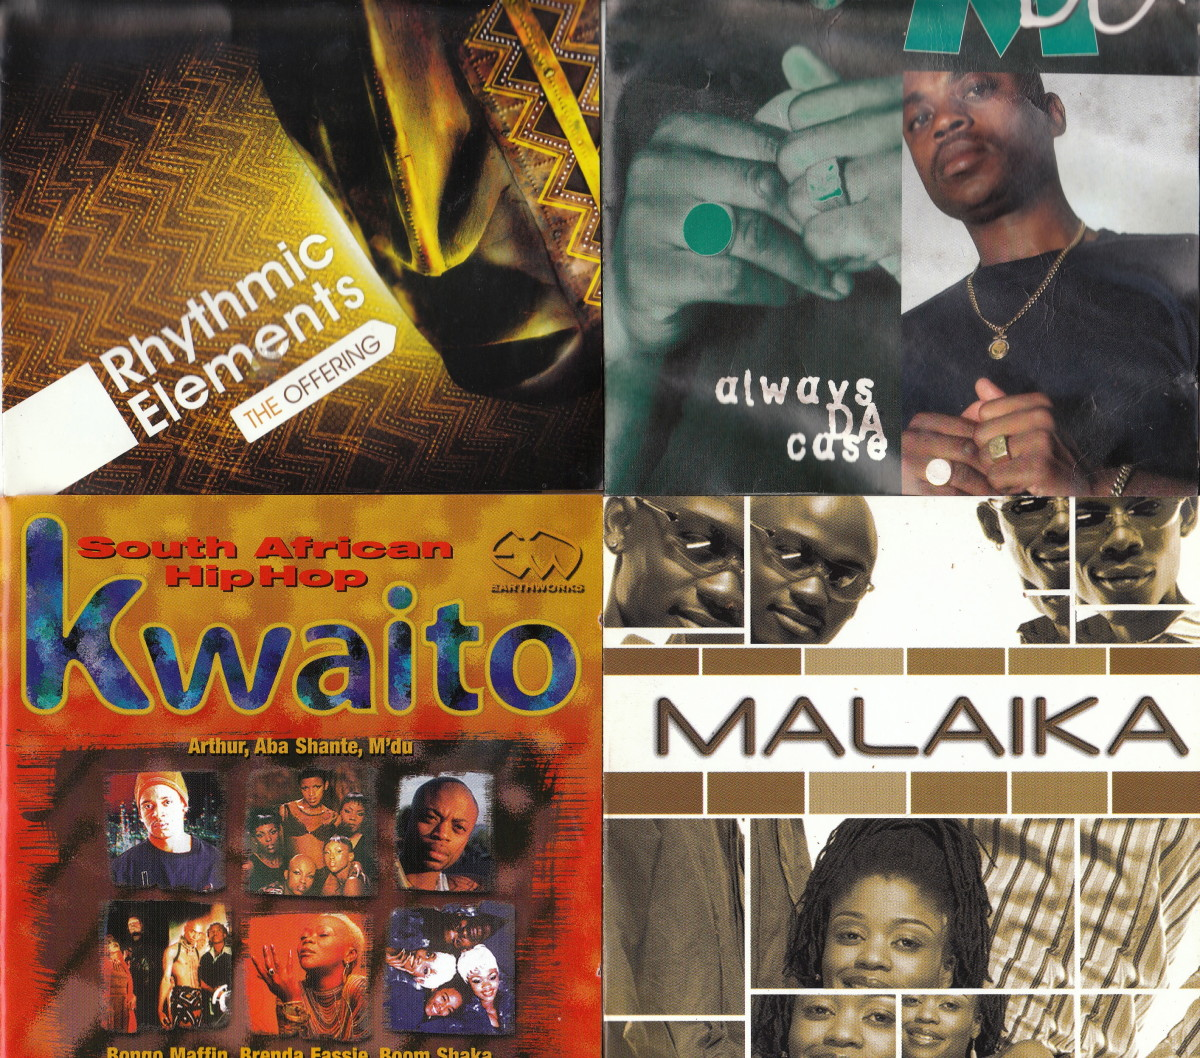 Rhytmic Elements; M'du Masilela; Kwaito Artists; Malaika